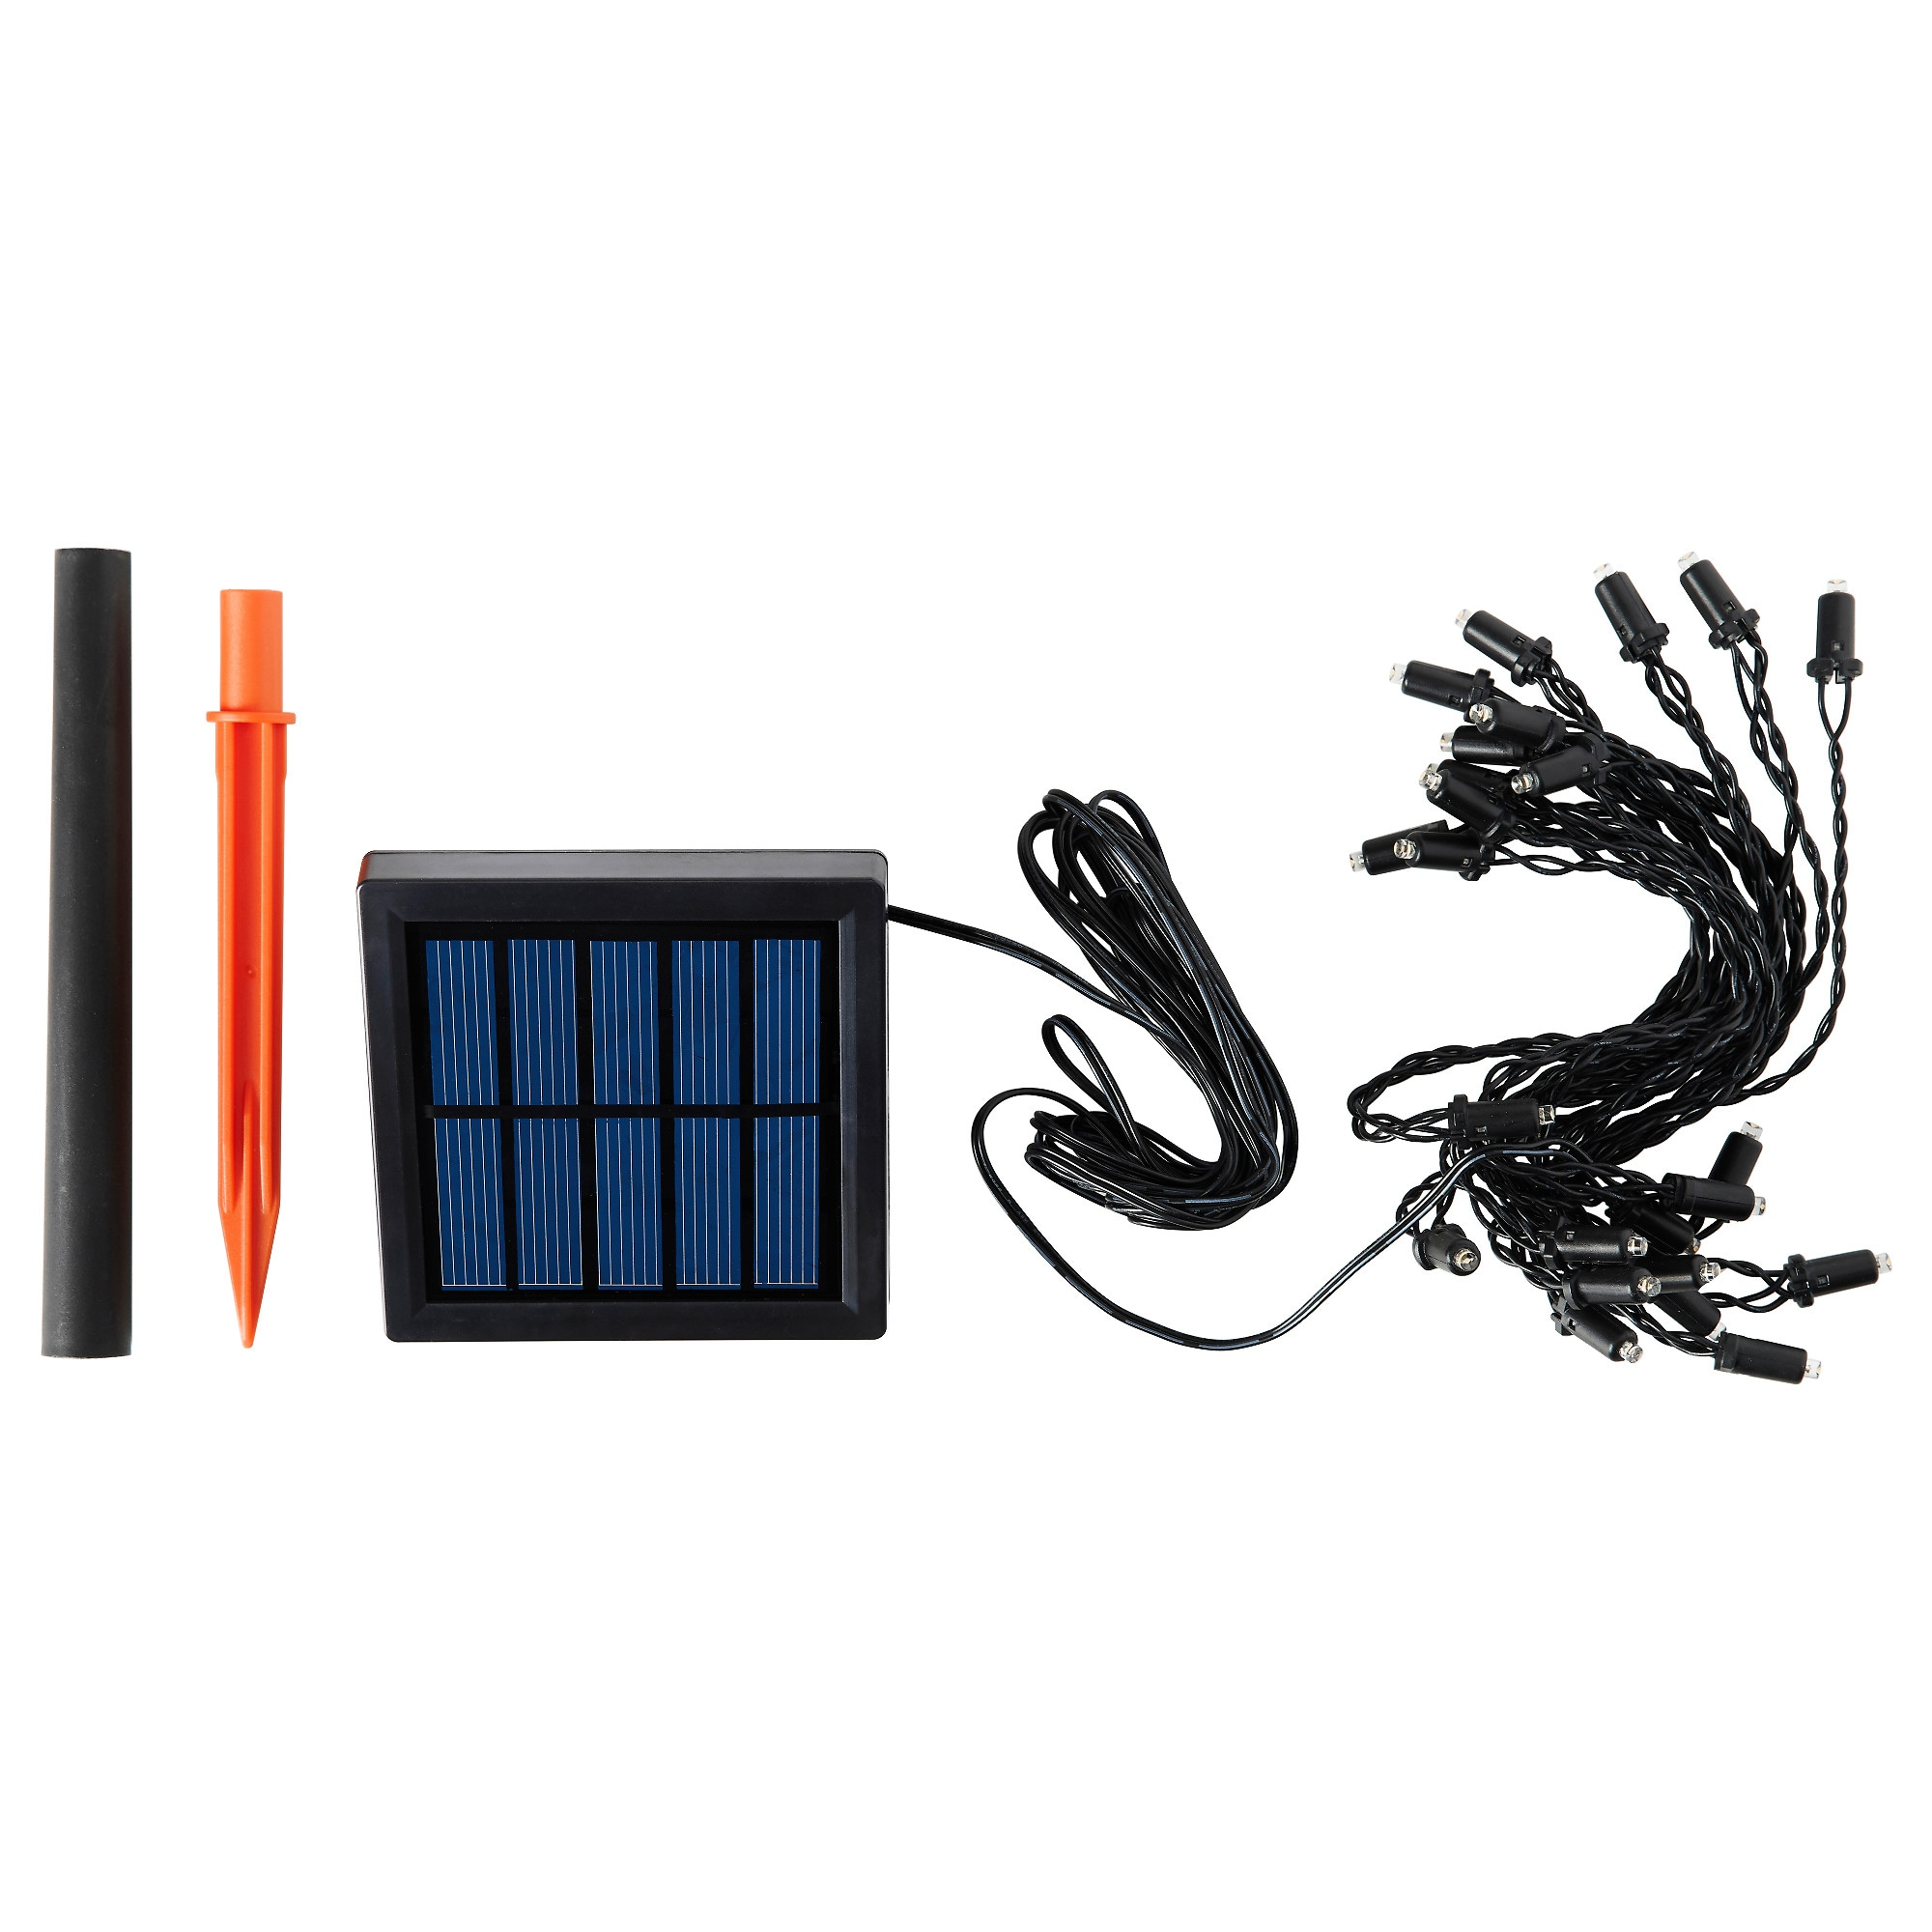 SOLARVET LED Light Chain With 24 Lights, Outdoor, Solar Powered Cord Length: